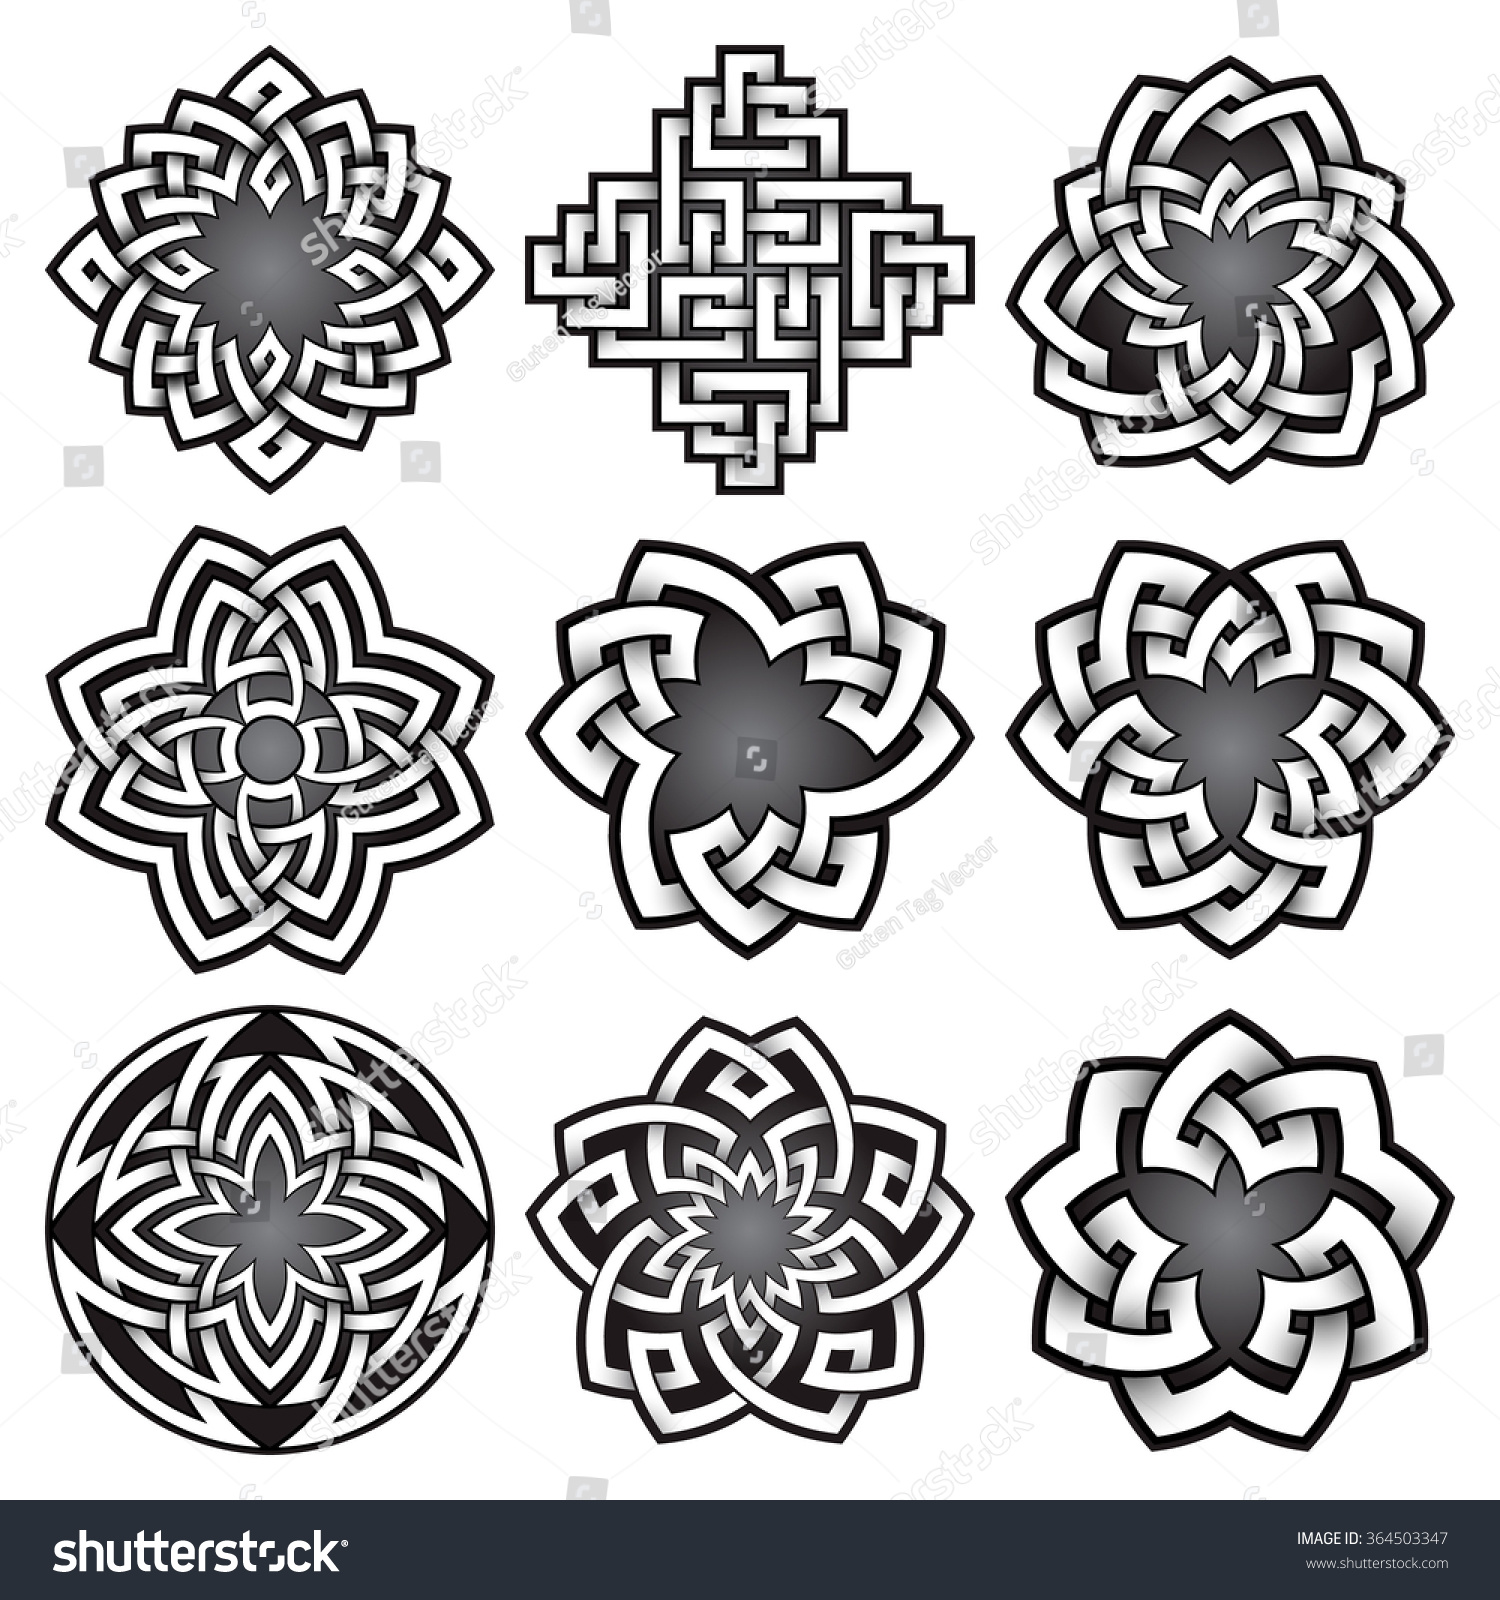 Royalty Free Set Of Logo Templates In Celtic Knots 364503347 Stock